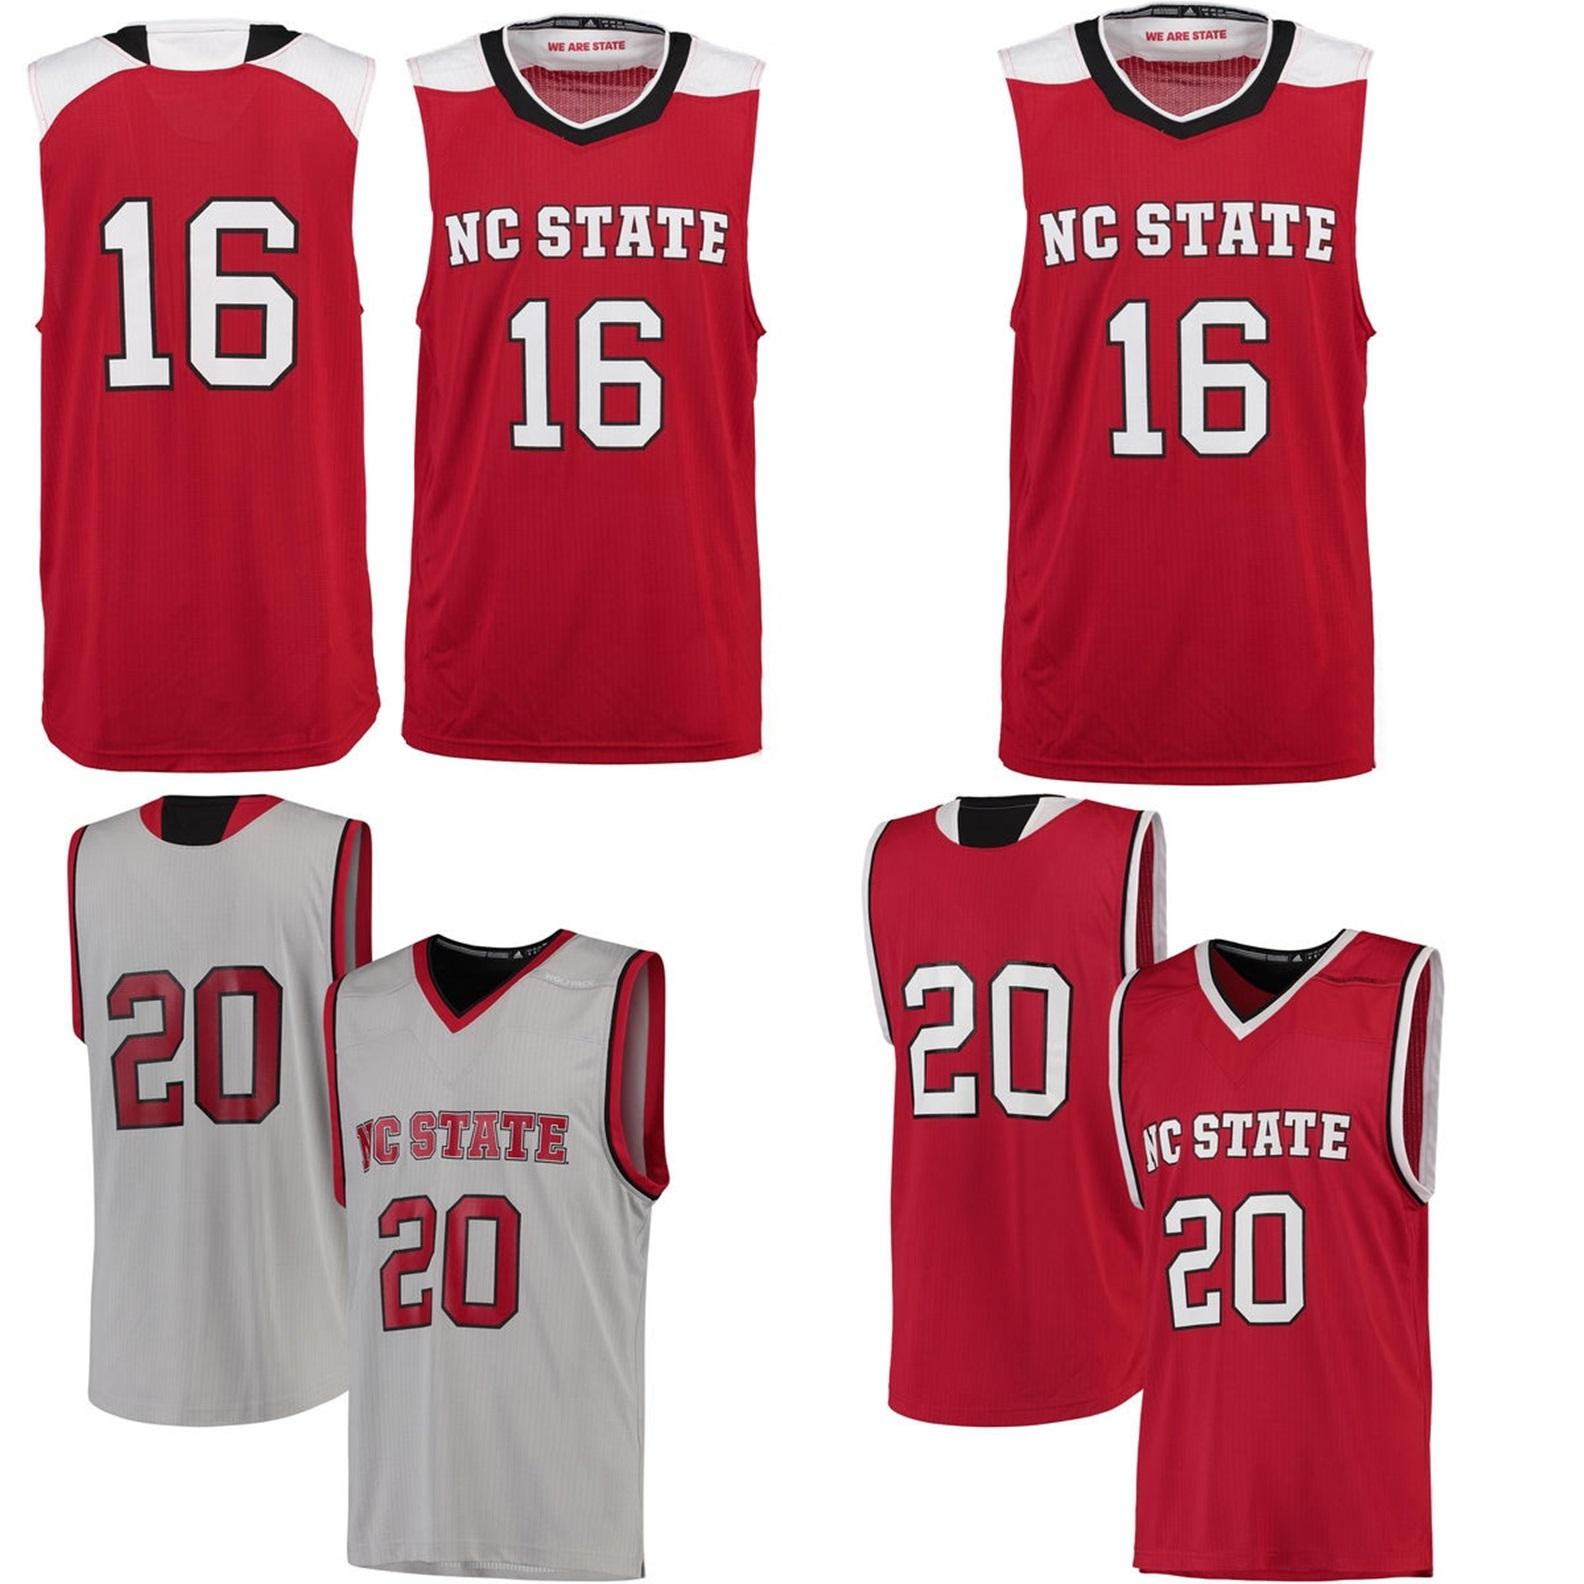 Wholesale Customize Mens Womens Kids NCAA NC State Wolfpack Basketball  Jersey Custom Any Name Any No. S-5XL College Basketball Sport Jerseys Best  Quality ... 507c8edac